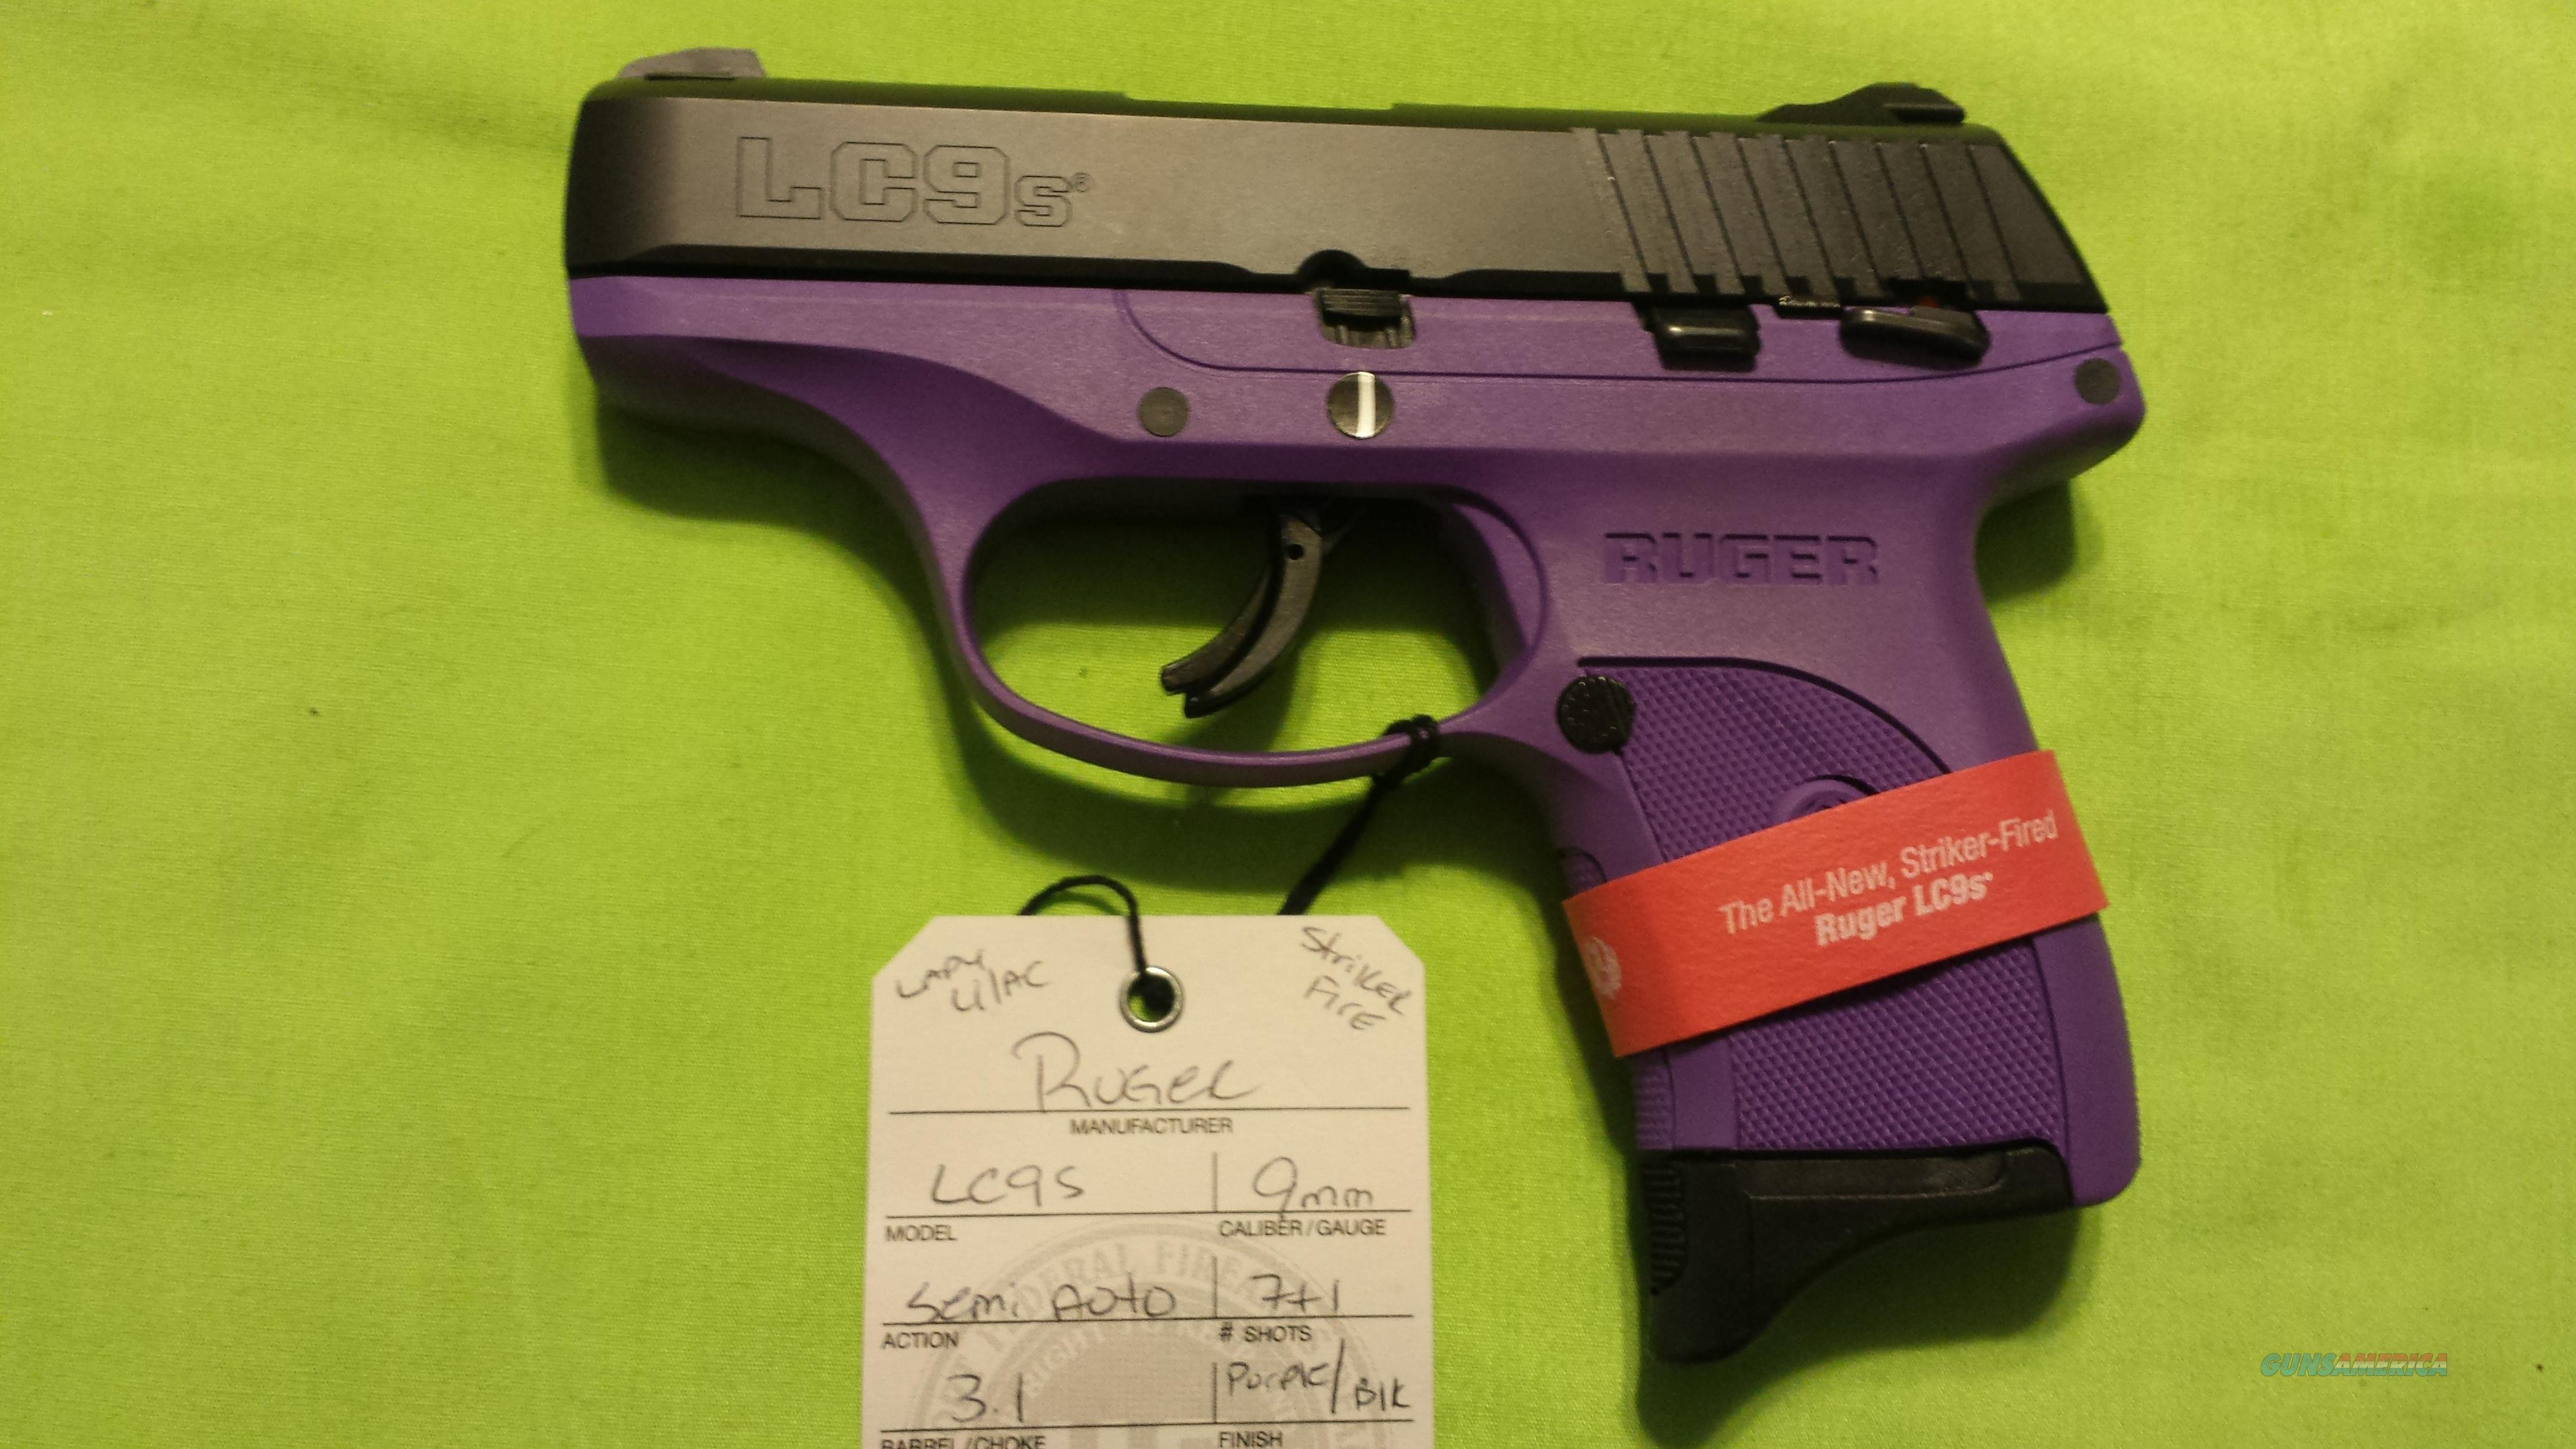 RUGER LC9S LADY LILAC PURPLE LC9 S 9 9MM 7RD STRIKER FIRE 3272  Guns > Pistols > Ruger Semi-Auto Pistols > LC9